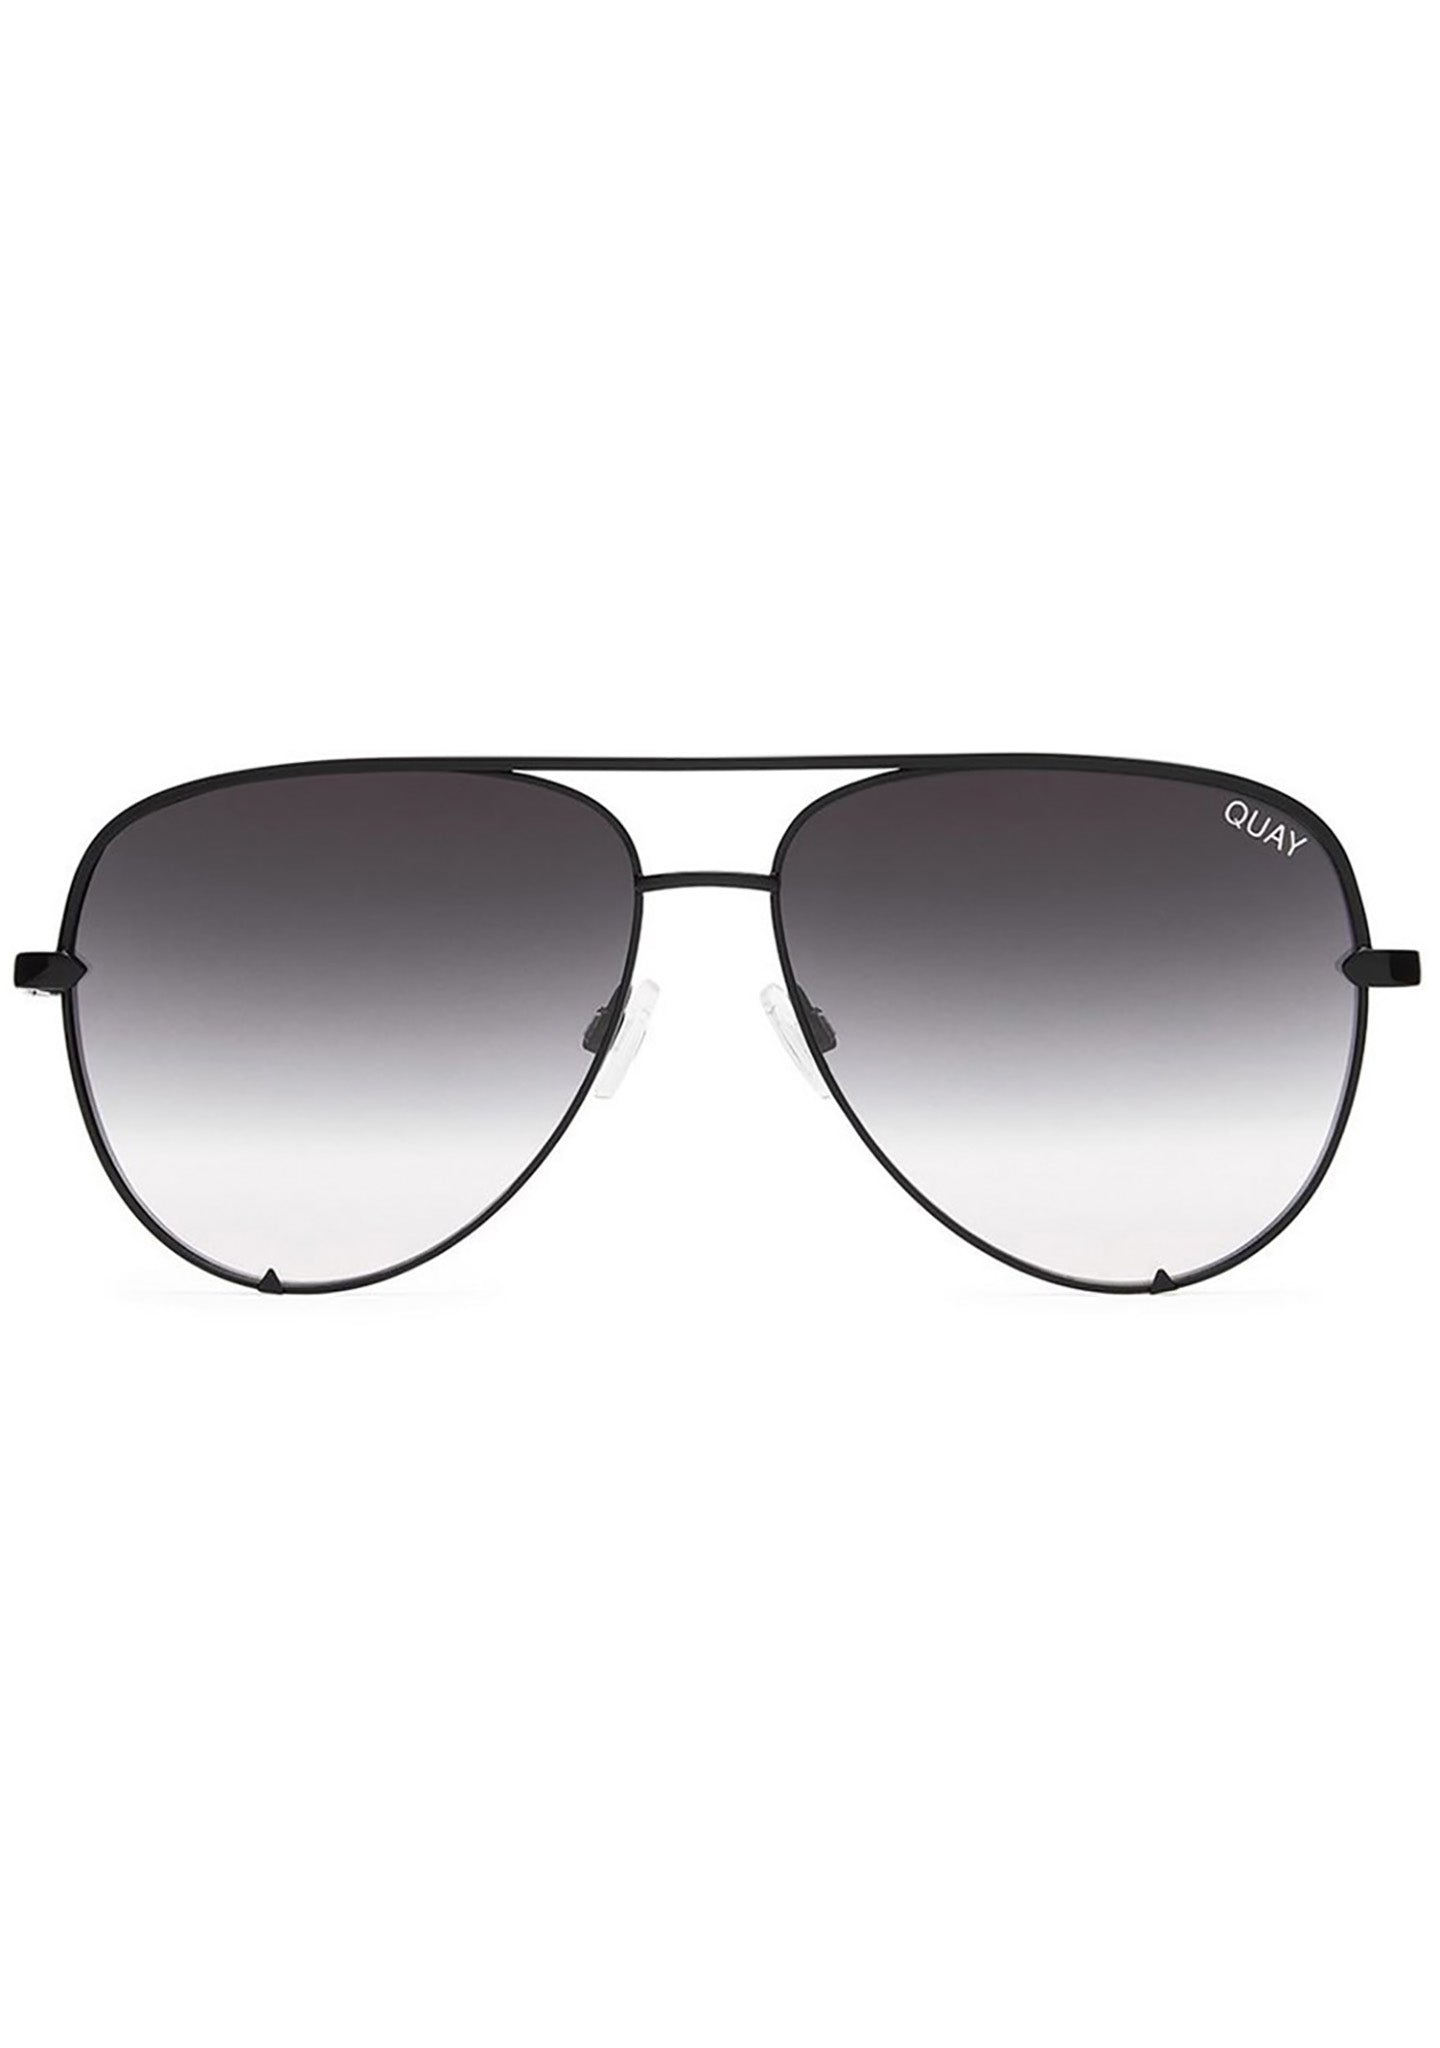 Quay Australia X Desi Perkins High Key Mini Sunglasses in Black Fade